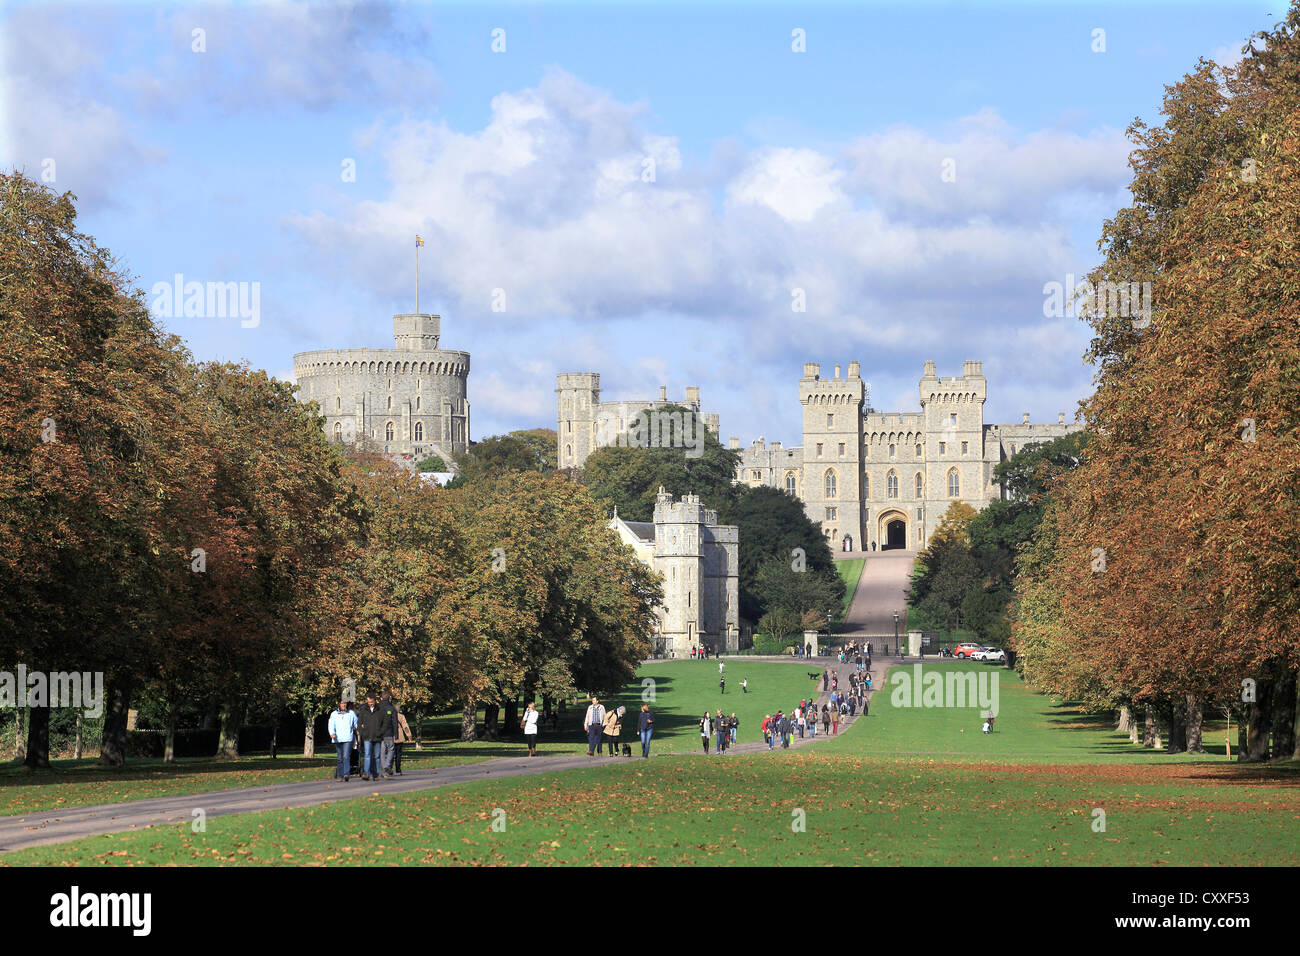 Windsor Castle England - Stock Image